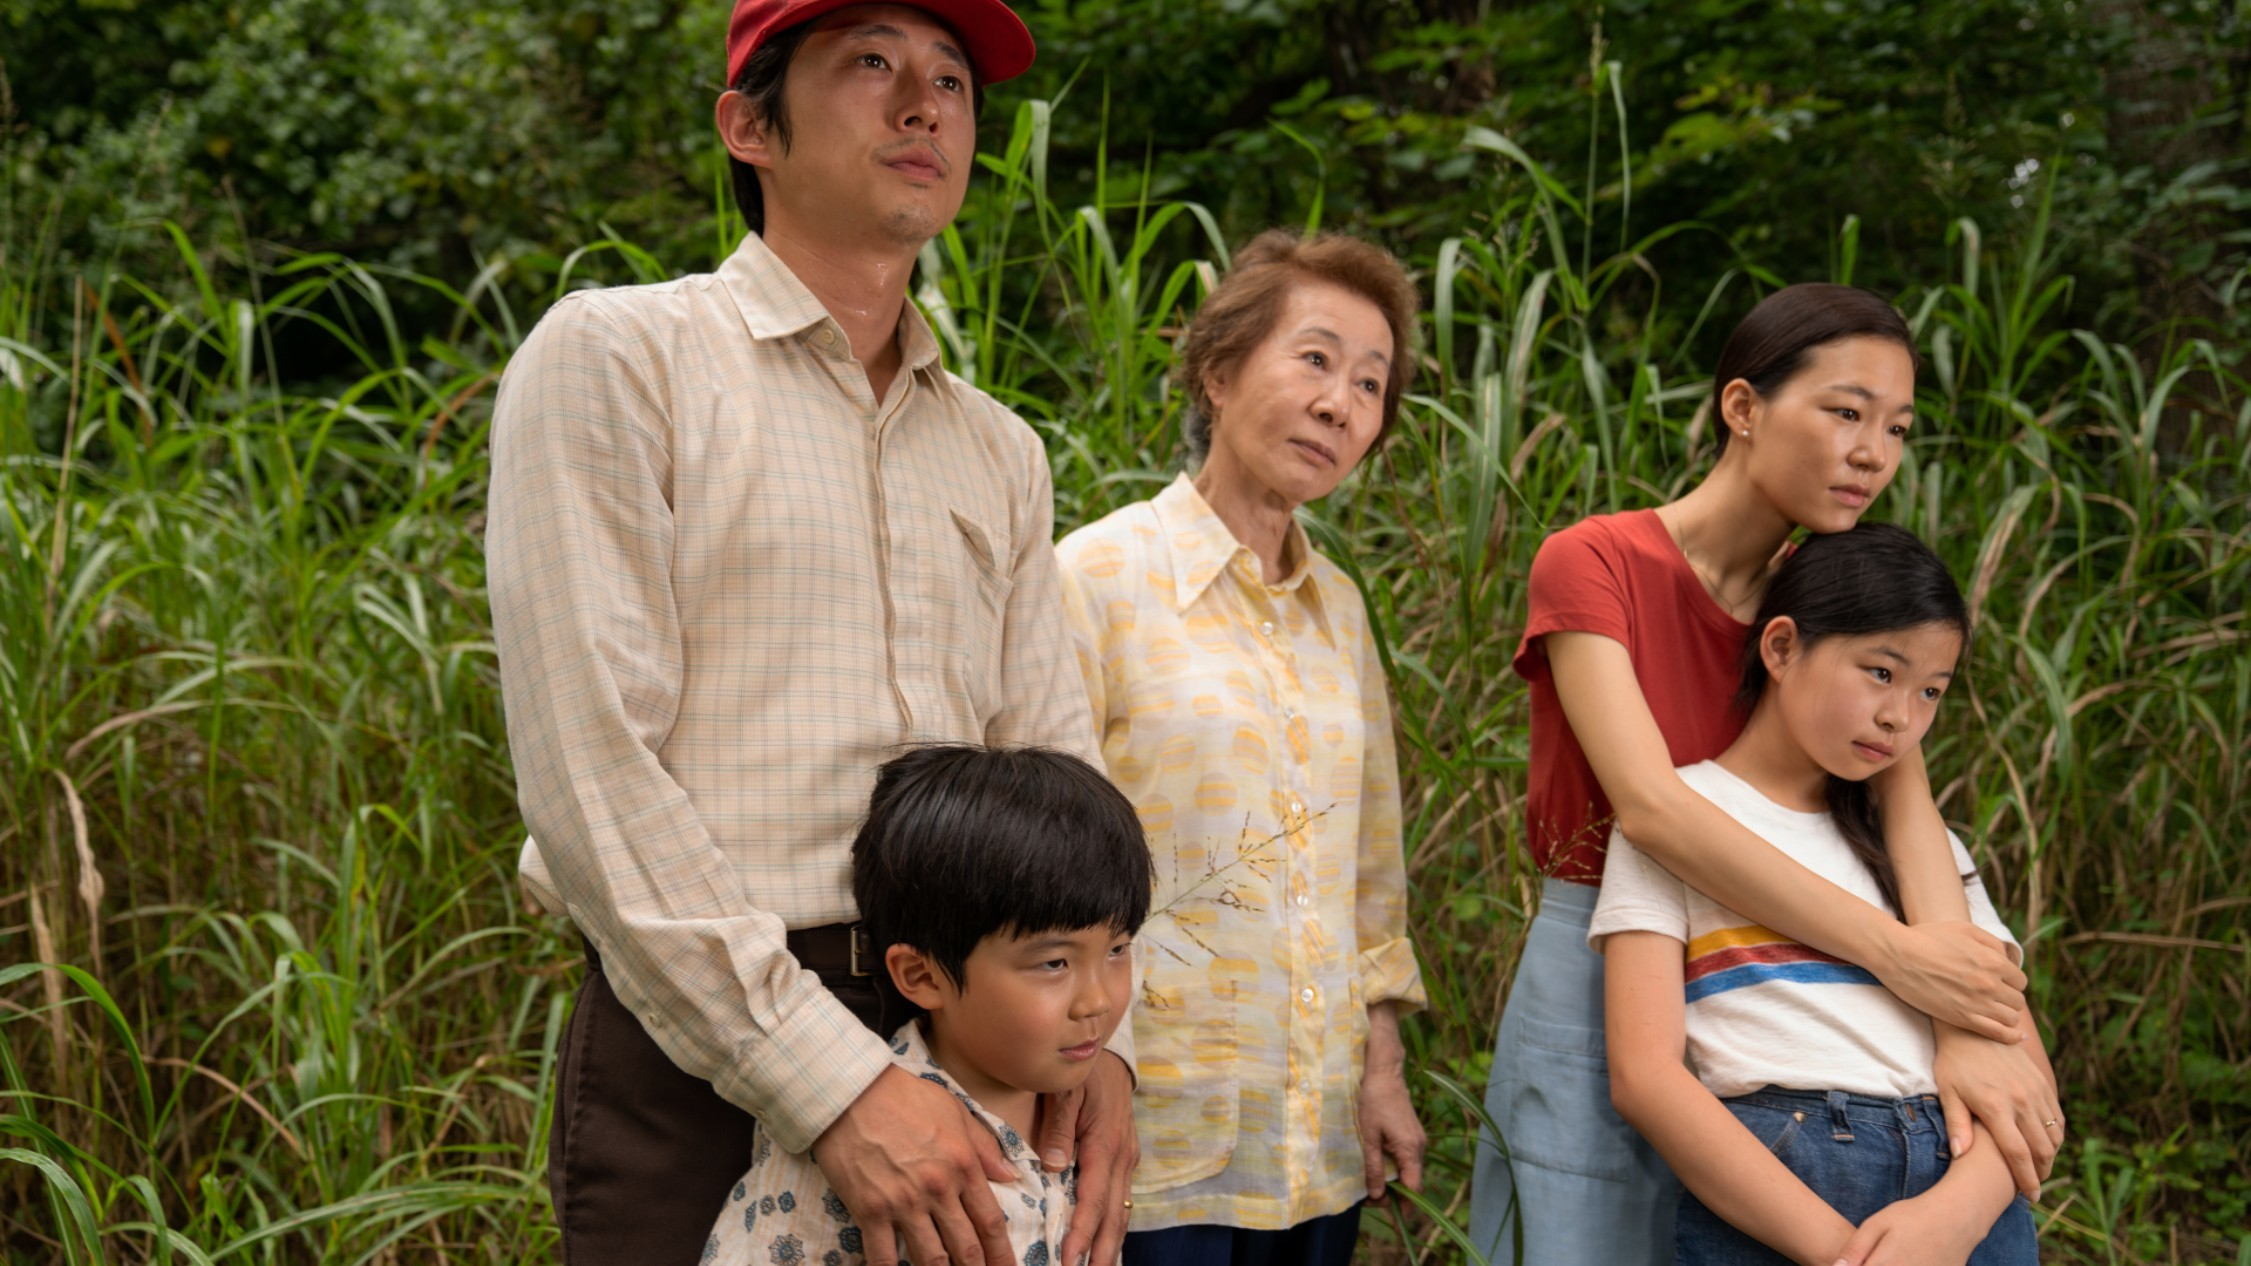 'The past would creep in': Minari's Lee Isaac Chung on Oscar-bound family drama